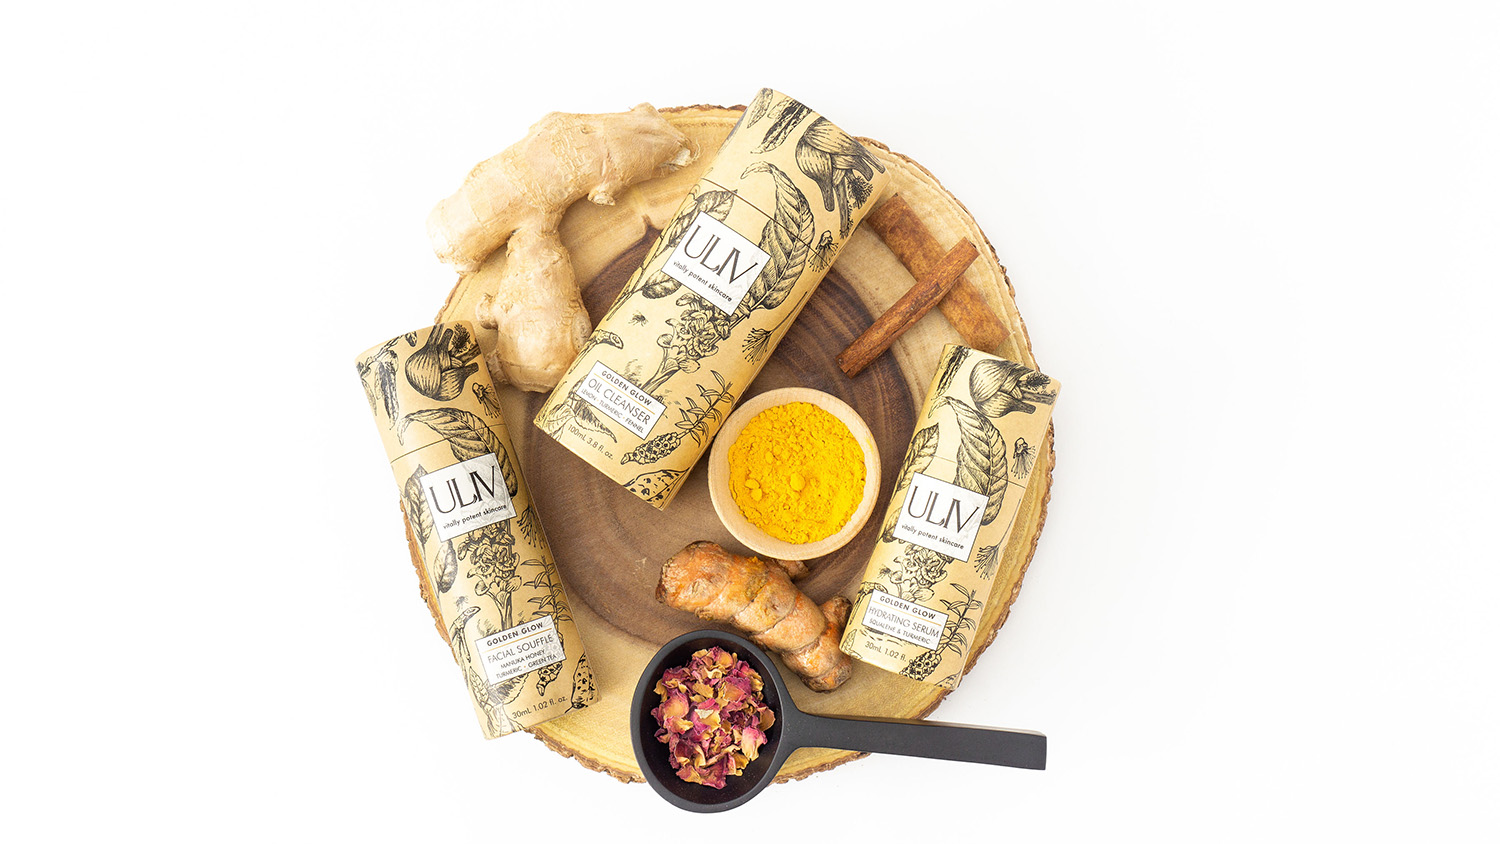 ULIV Skincare is formulated with organic turmeric and ginger.